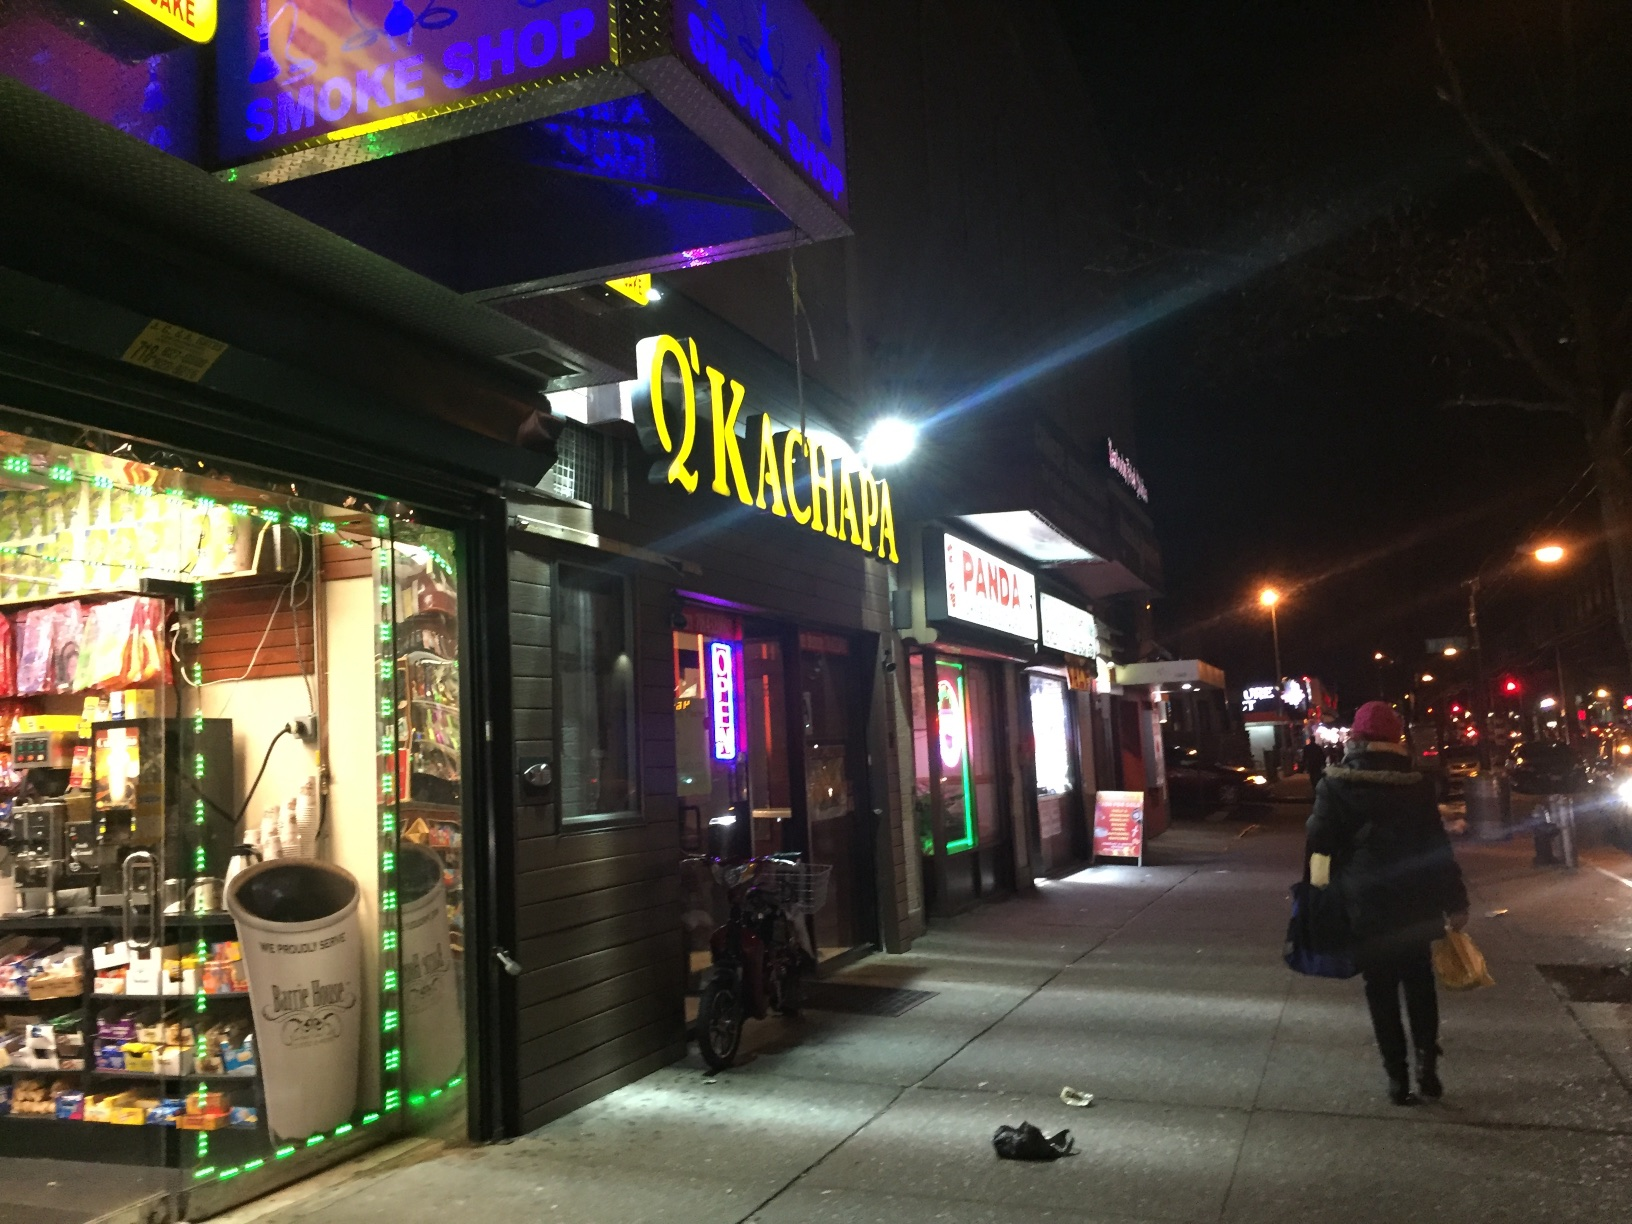 Q'Kachapa at 5625 Broadway in the Bronx.